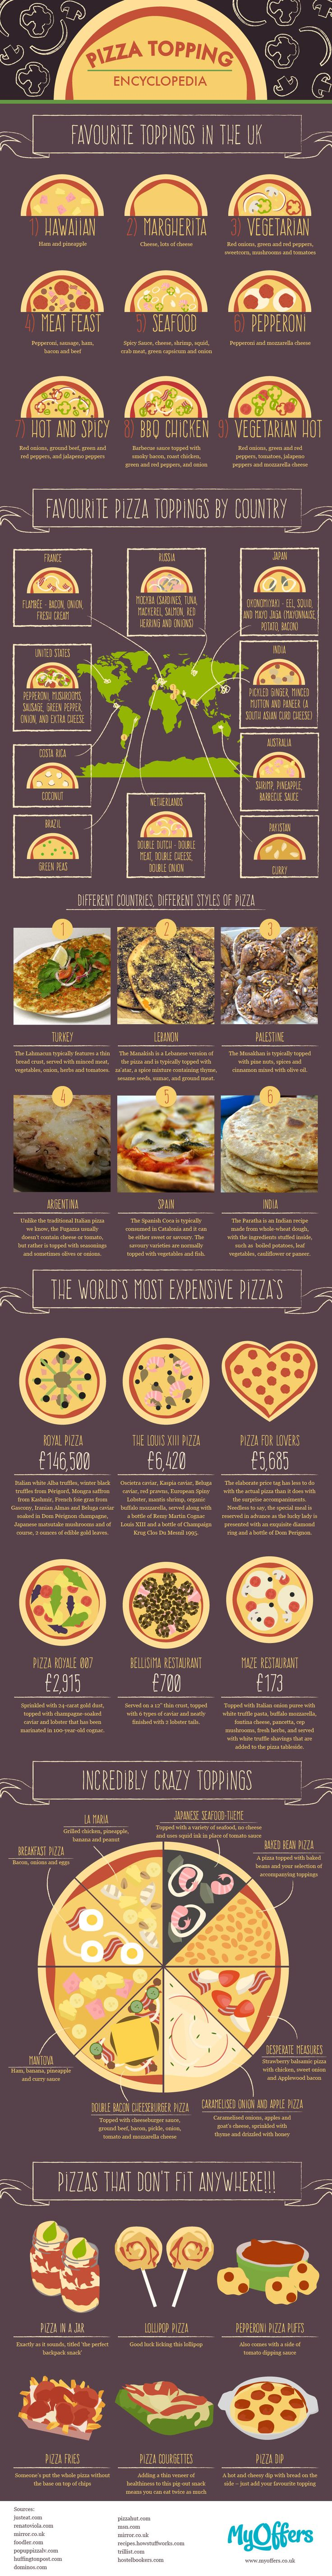 Inspire your next meal with this encyclopedia about pizzas.  Find out pizza toppings around the world, the craziest premium pizzas, styles, and favorites around the world.